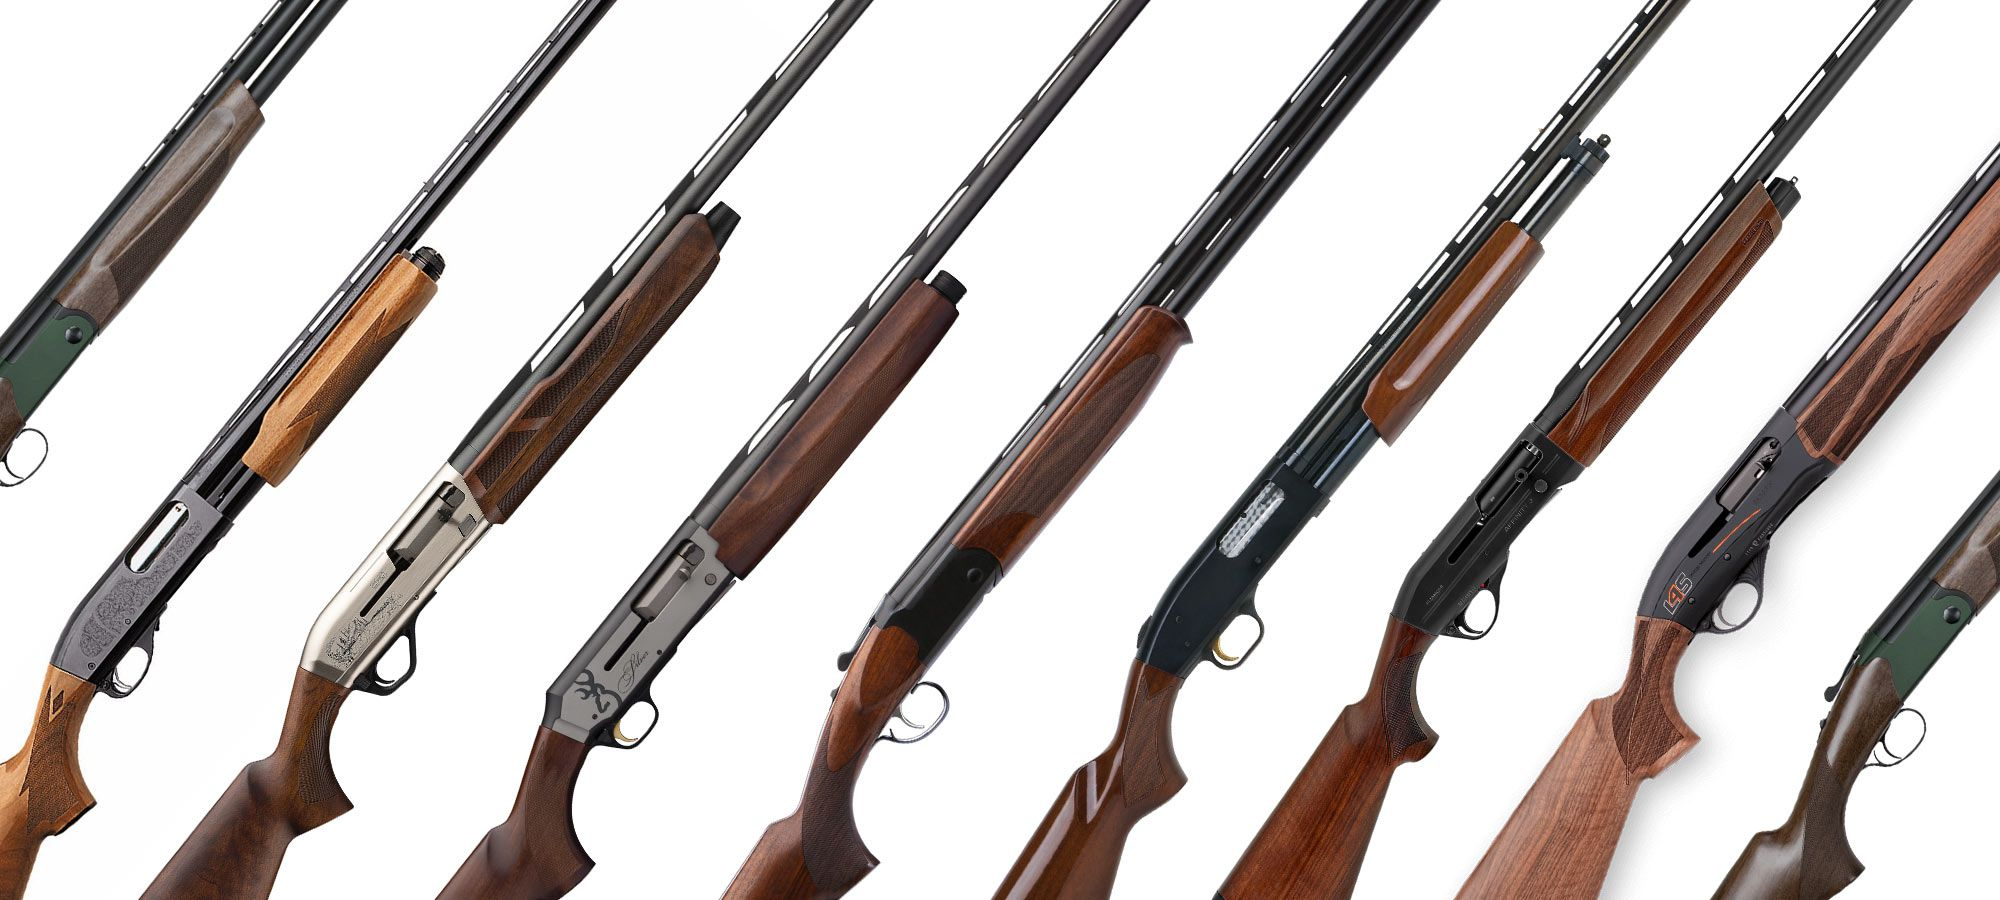 8 Upland Bird Hunting Shotguns That Won't Break the Bank